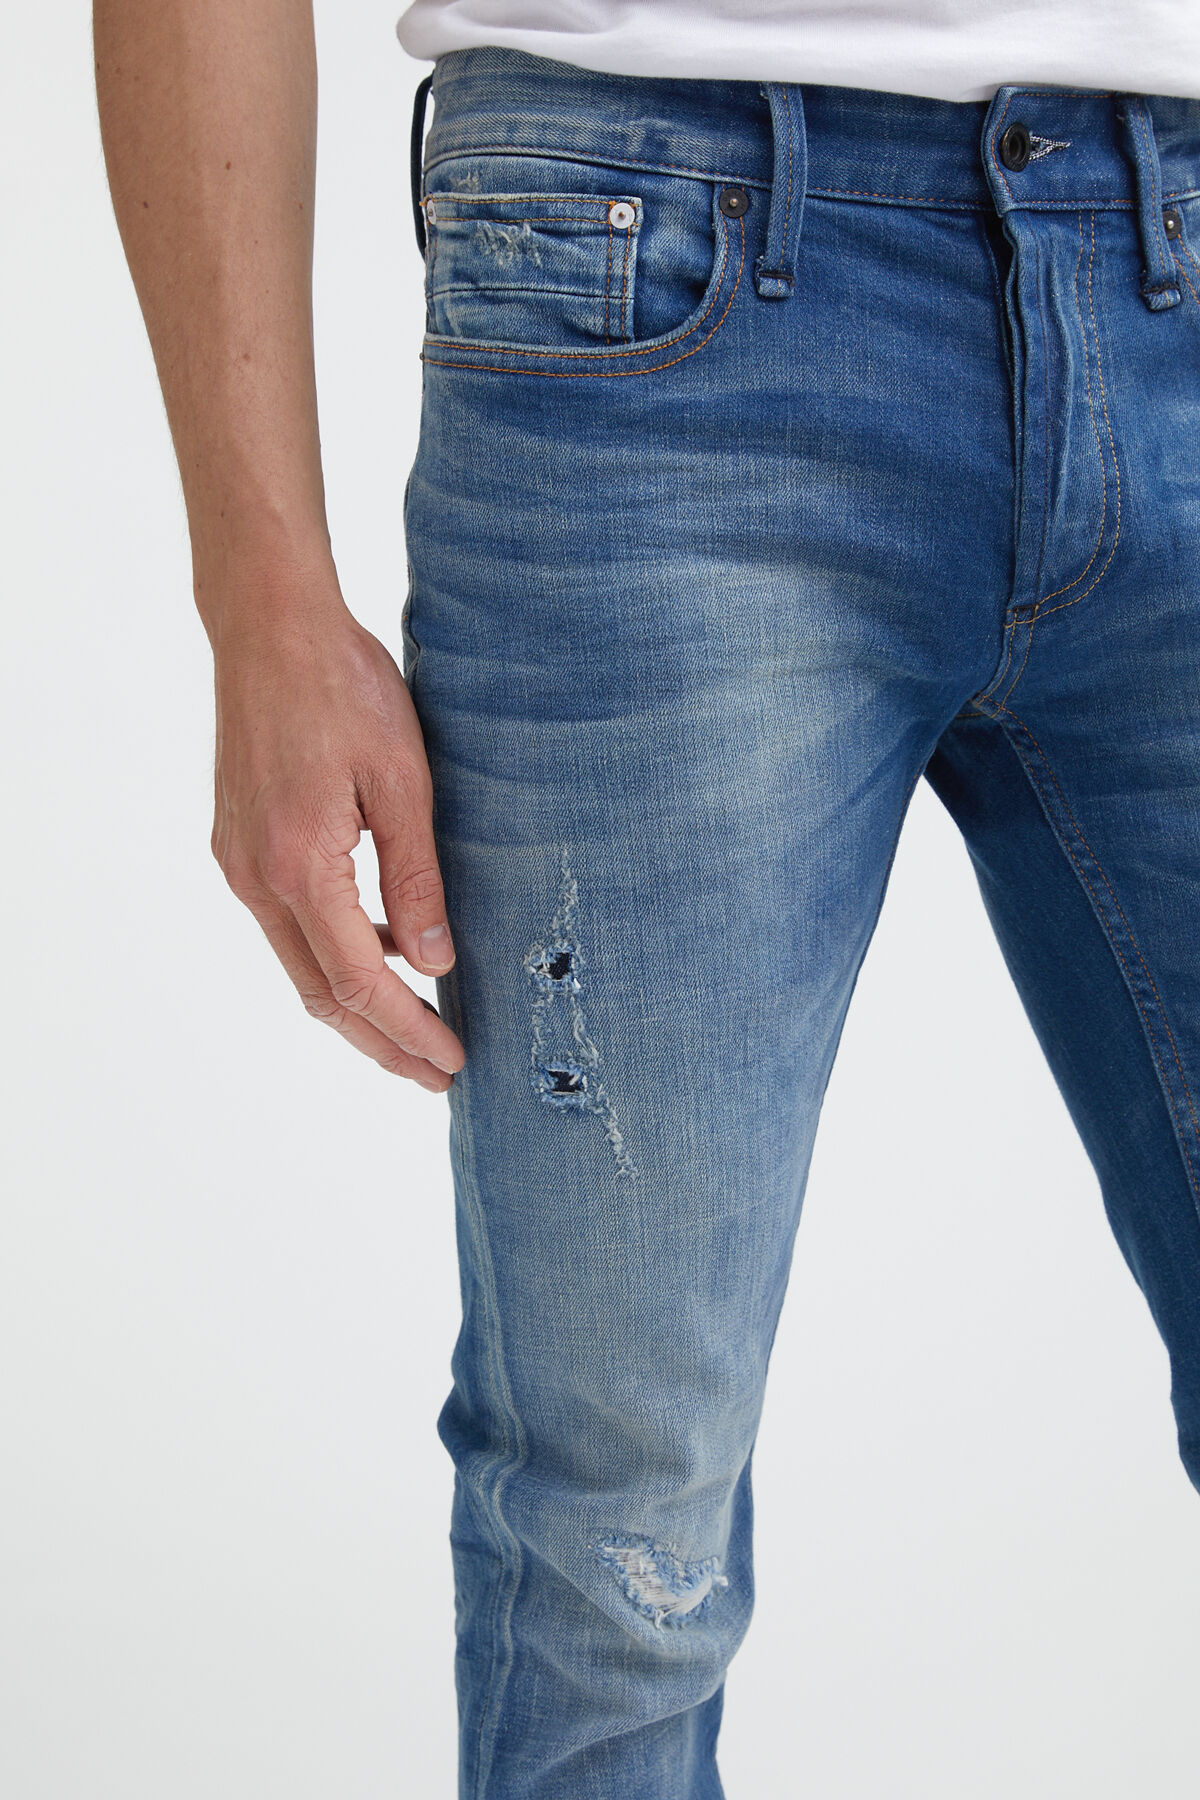 BOLT Hand Repaired Denim - Skinny Fit